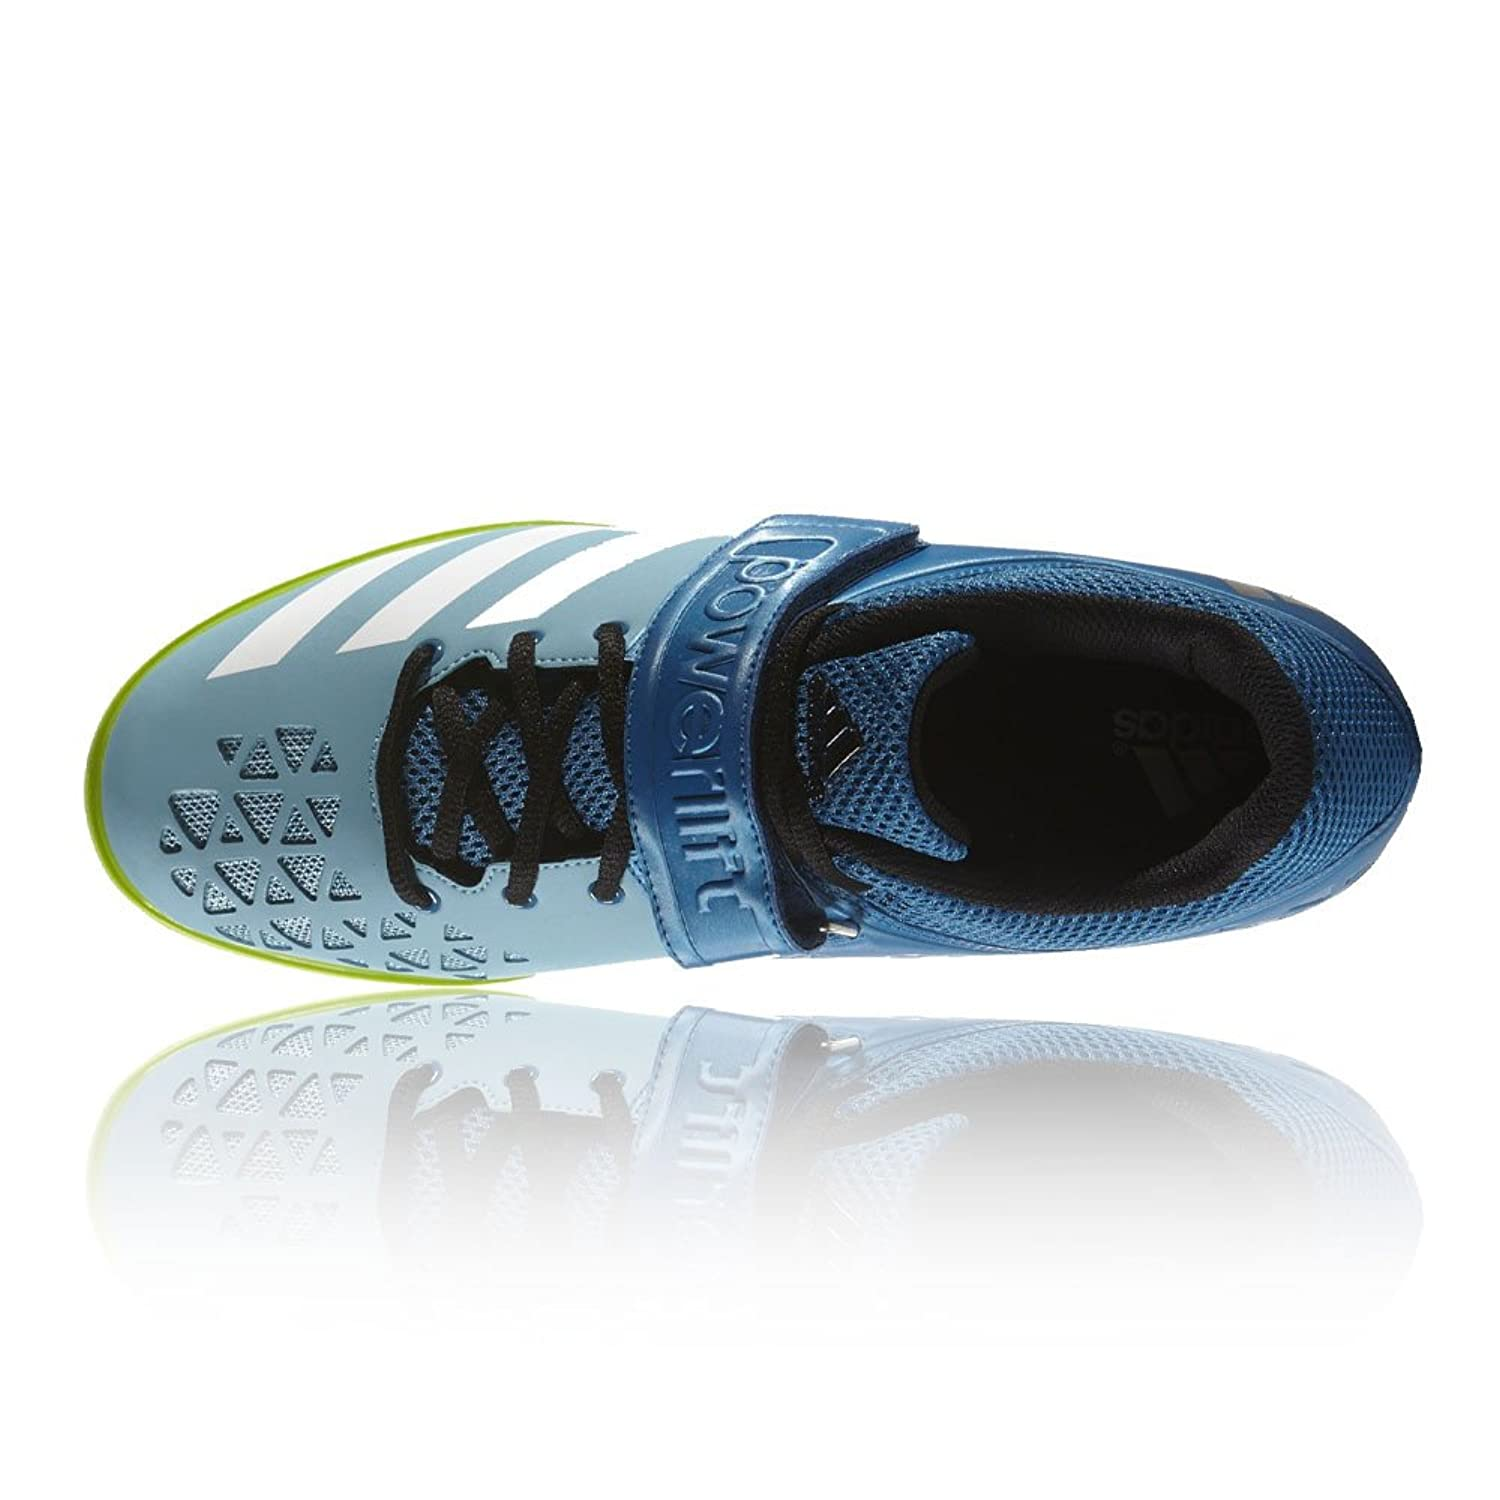 Adidas Powerlift 3 Weightlifting Zapatillas - AW17 - 48.7 ub8rjFAY